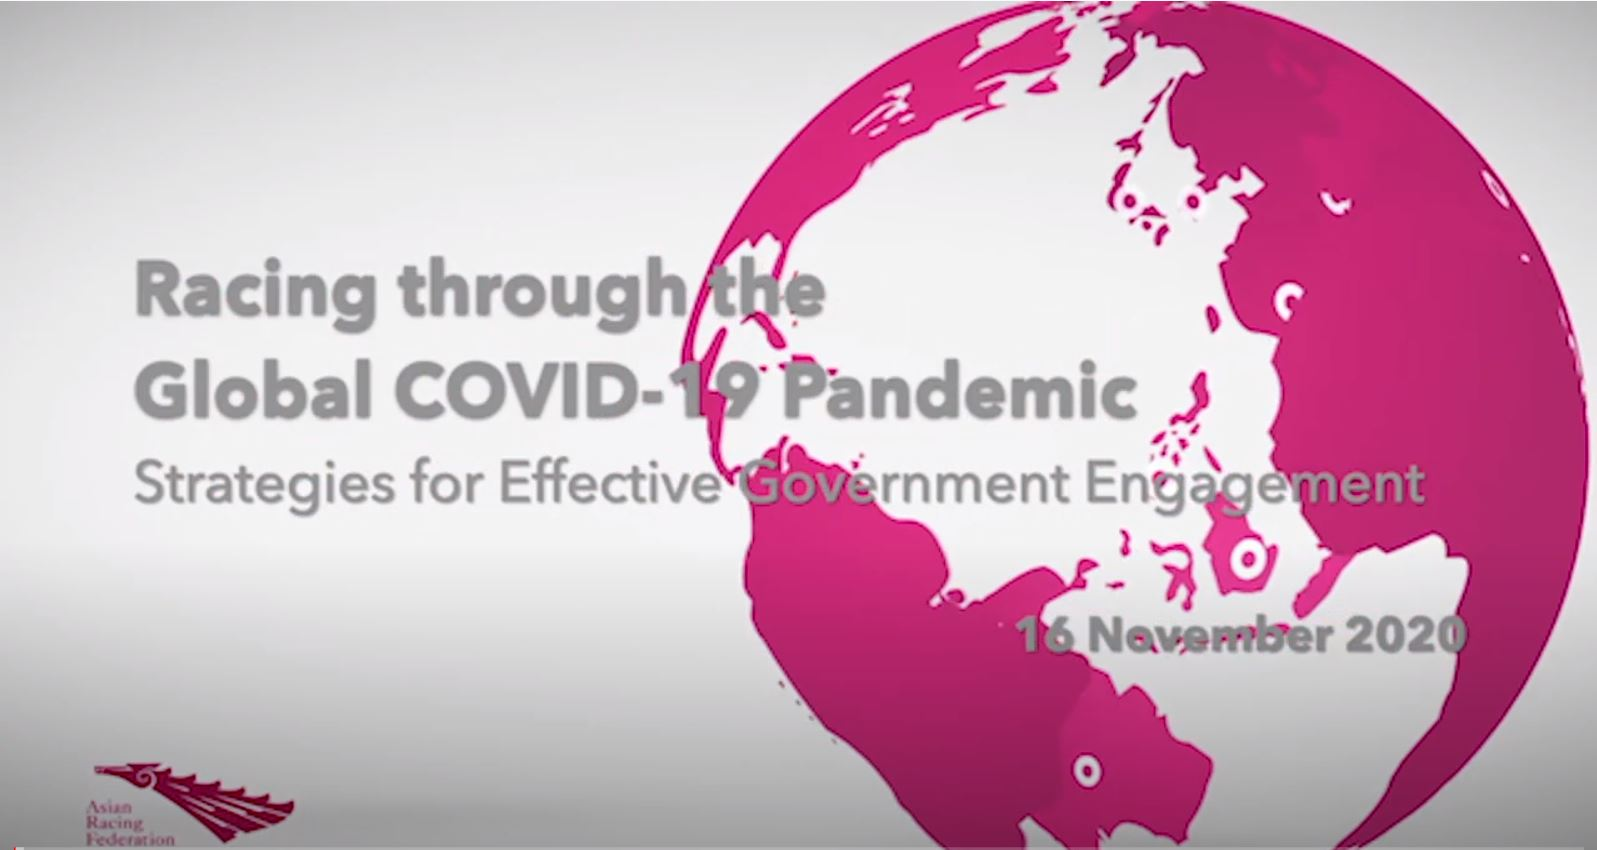 Racing Through the Global COVID-19 Pandemic Webinar: Strategies for Effective Government Engagement